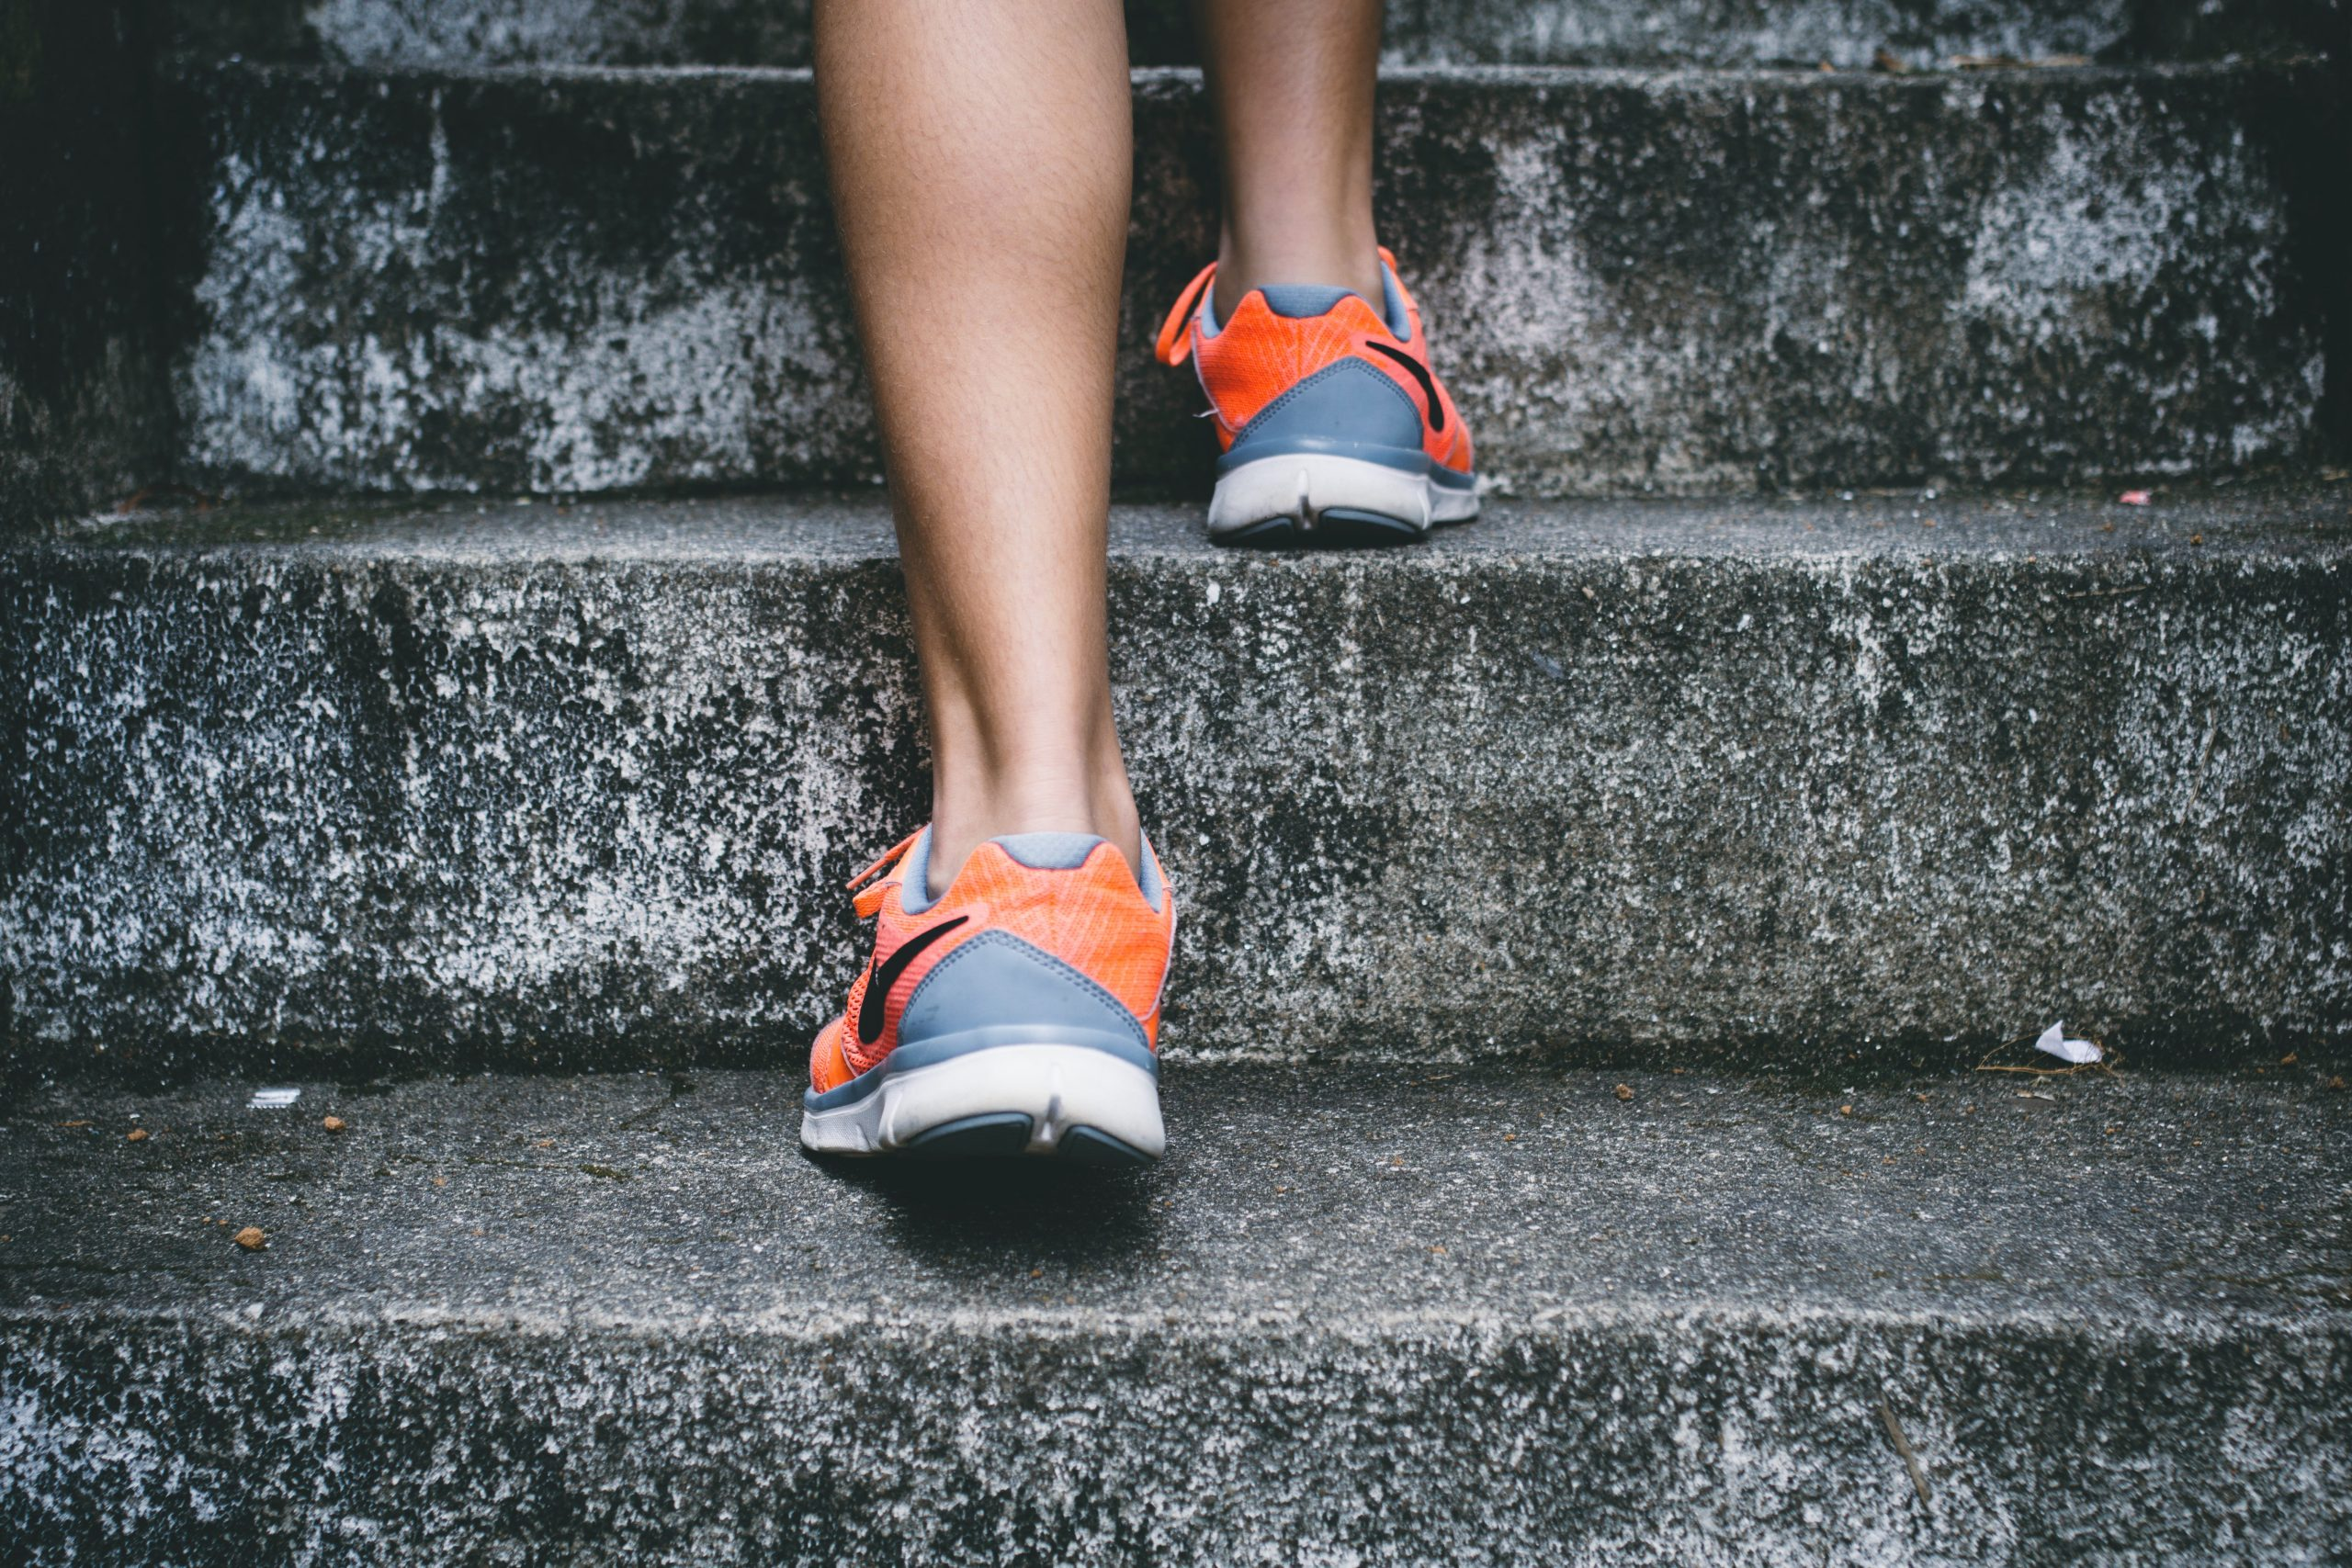 Person's feet in trainers, bare legs, ascending stairs